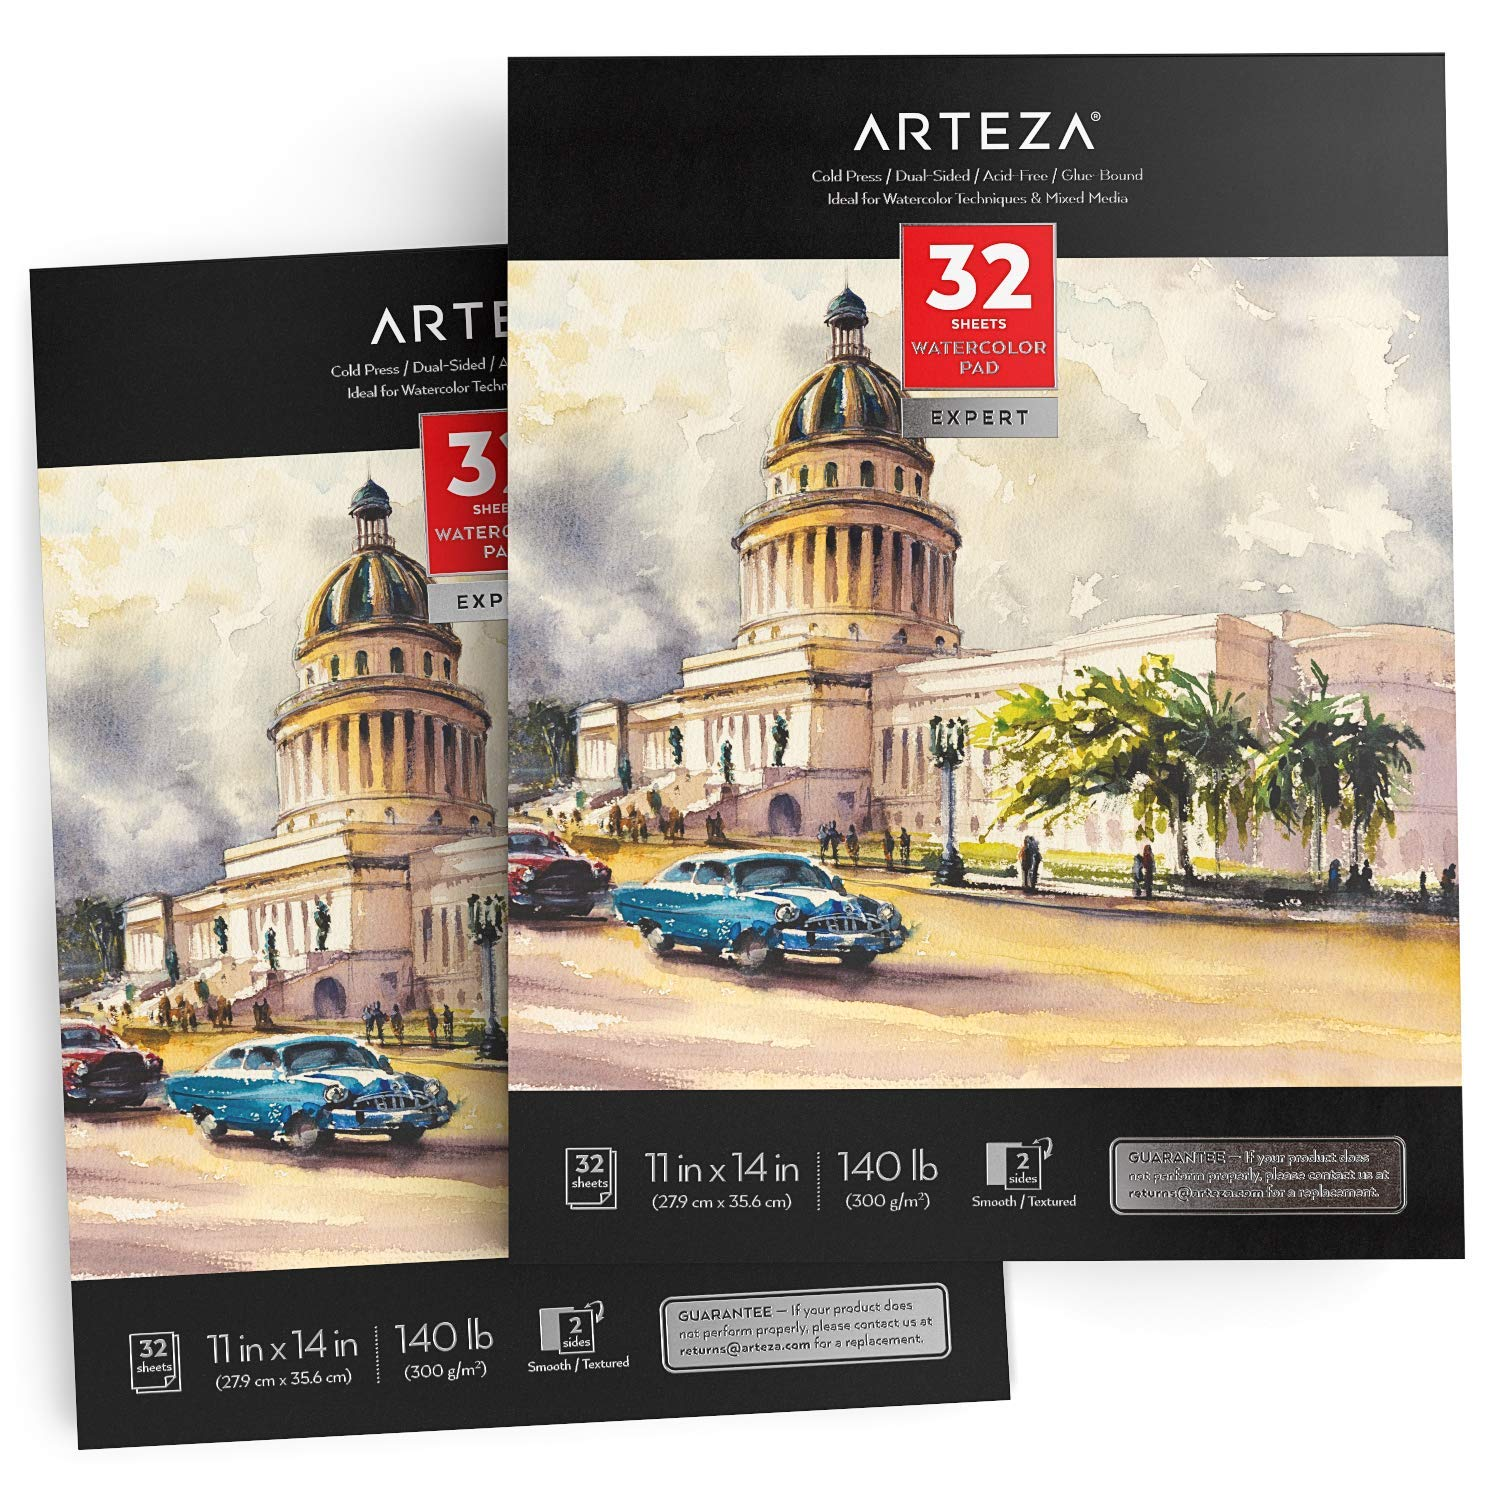 ARTEZA 11x14'' Expert Watercolor Pad, Pack of 2, 64 Sheets (140lb/300gsm), Cold Pressed, Acid Free Paper, 32 Sheets Each, Ideal for Watercolor Techniques and Mixed Media